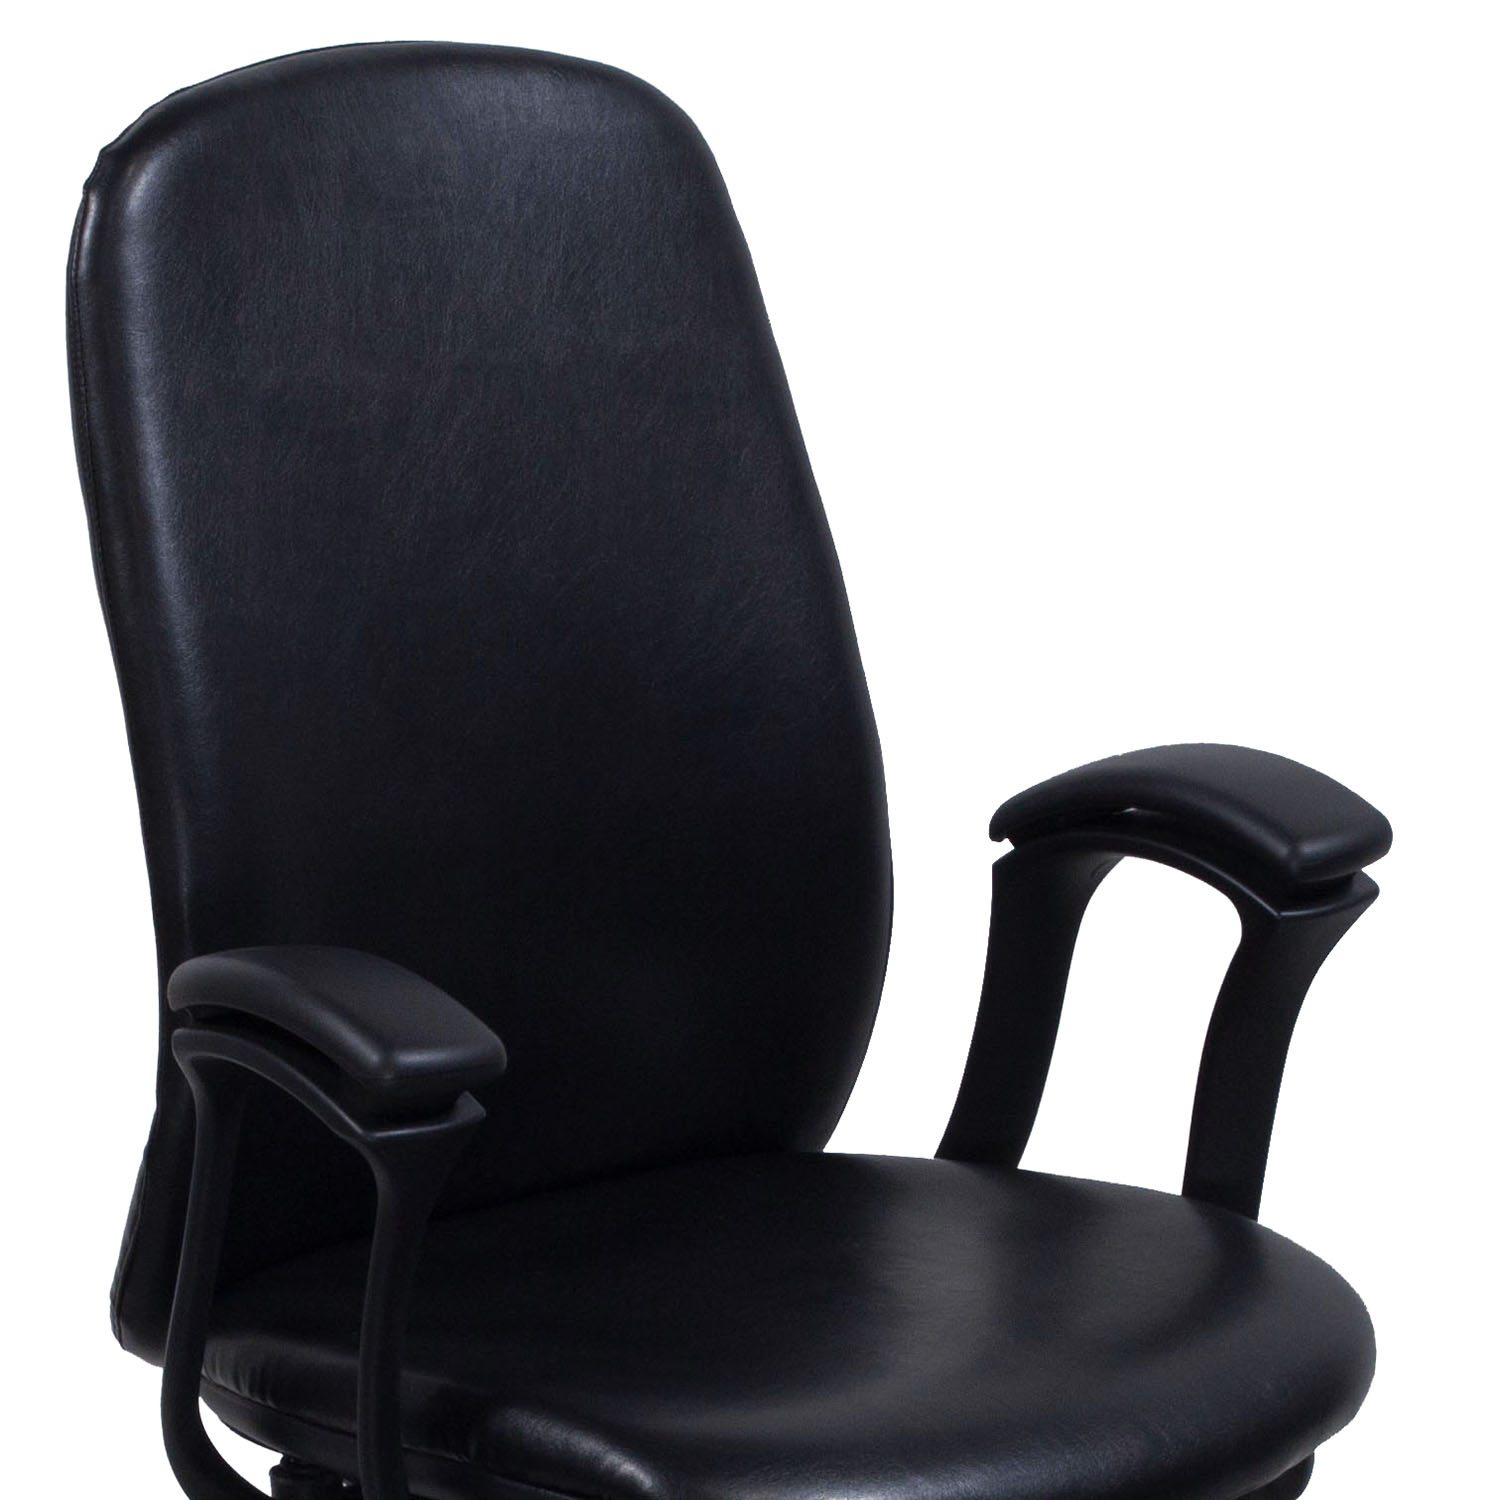 Teknion Amicus Black Leather Conference Chair   Arm